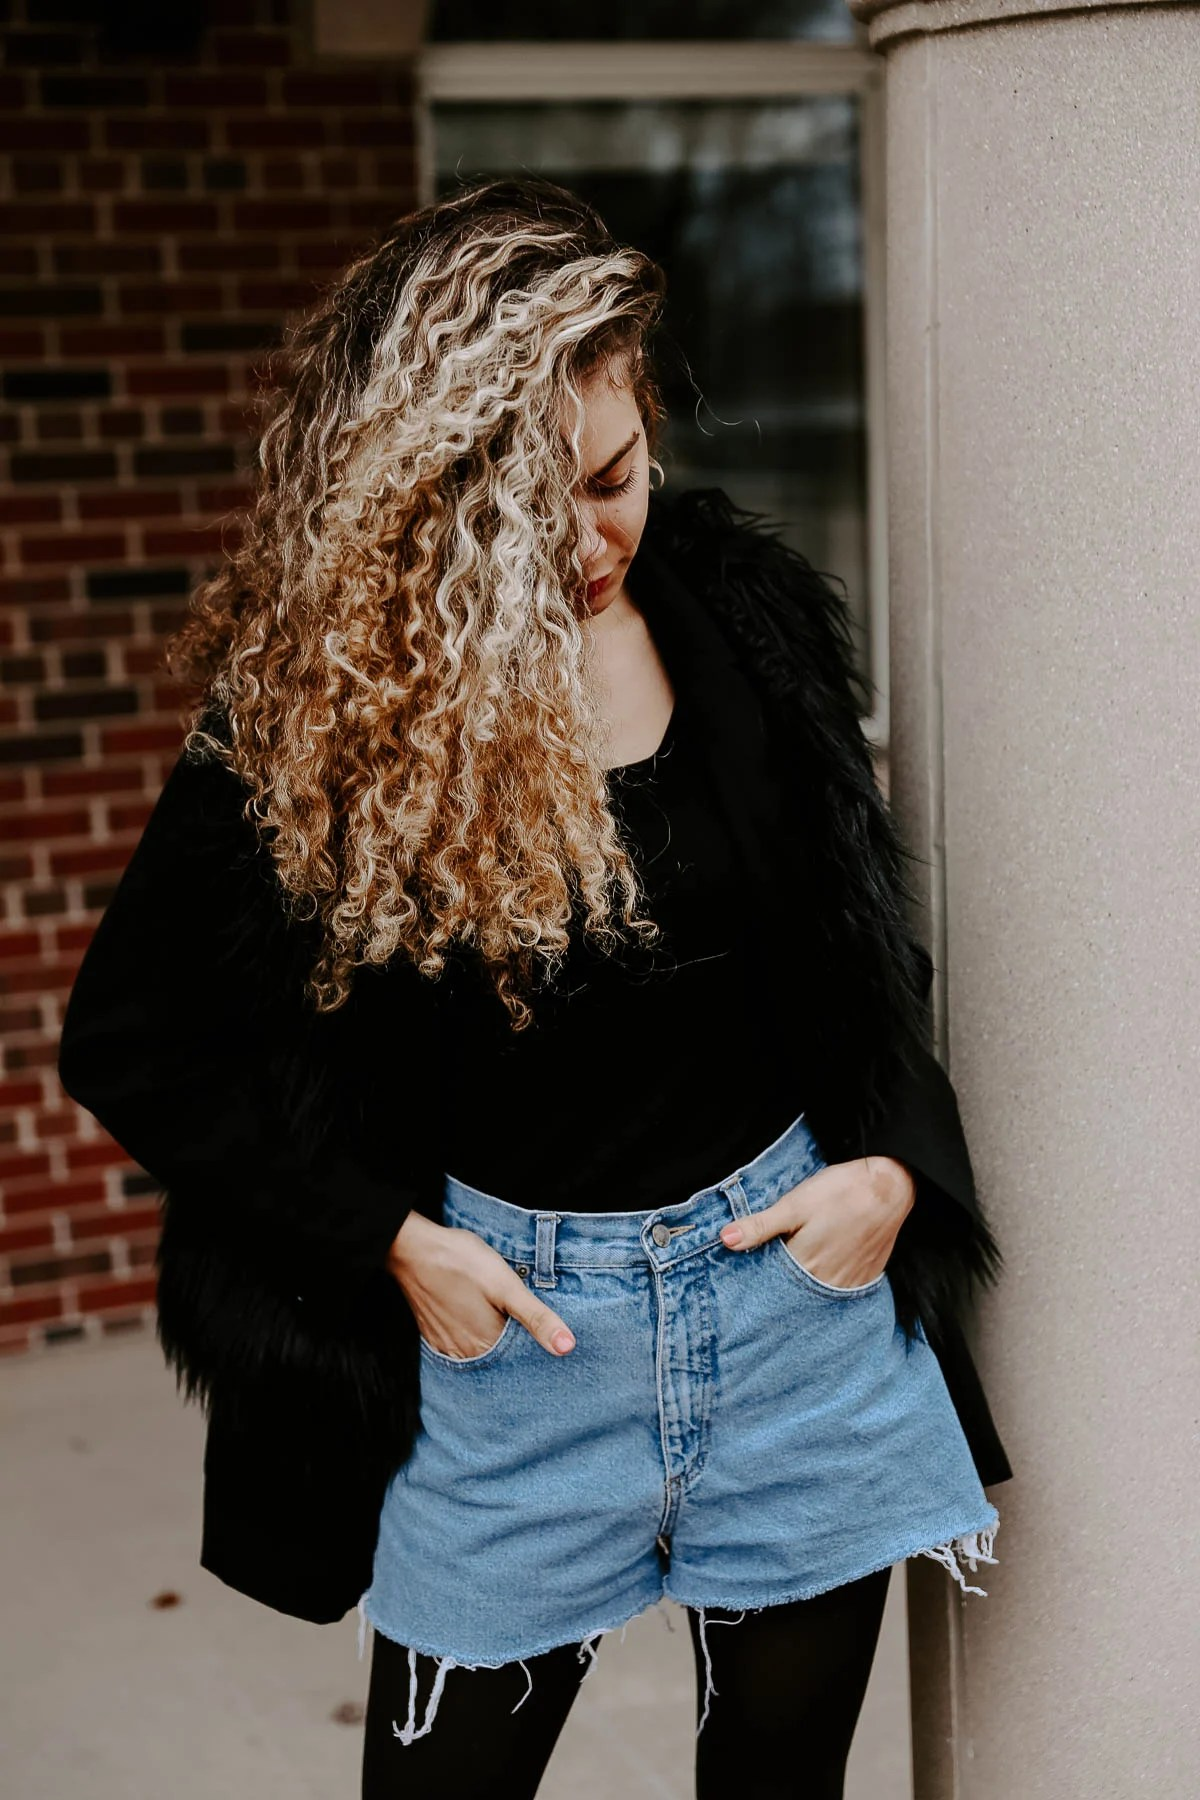 Here are some great style hacks to have your summer pieces work for fall or winter. Your wardrobe just got a lot more winter style outfit ideas!